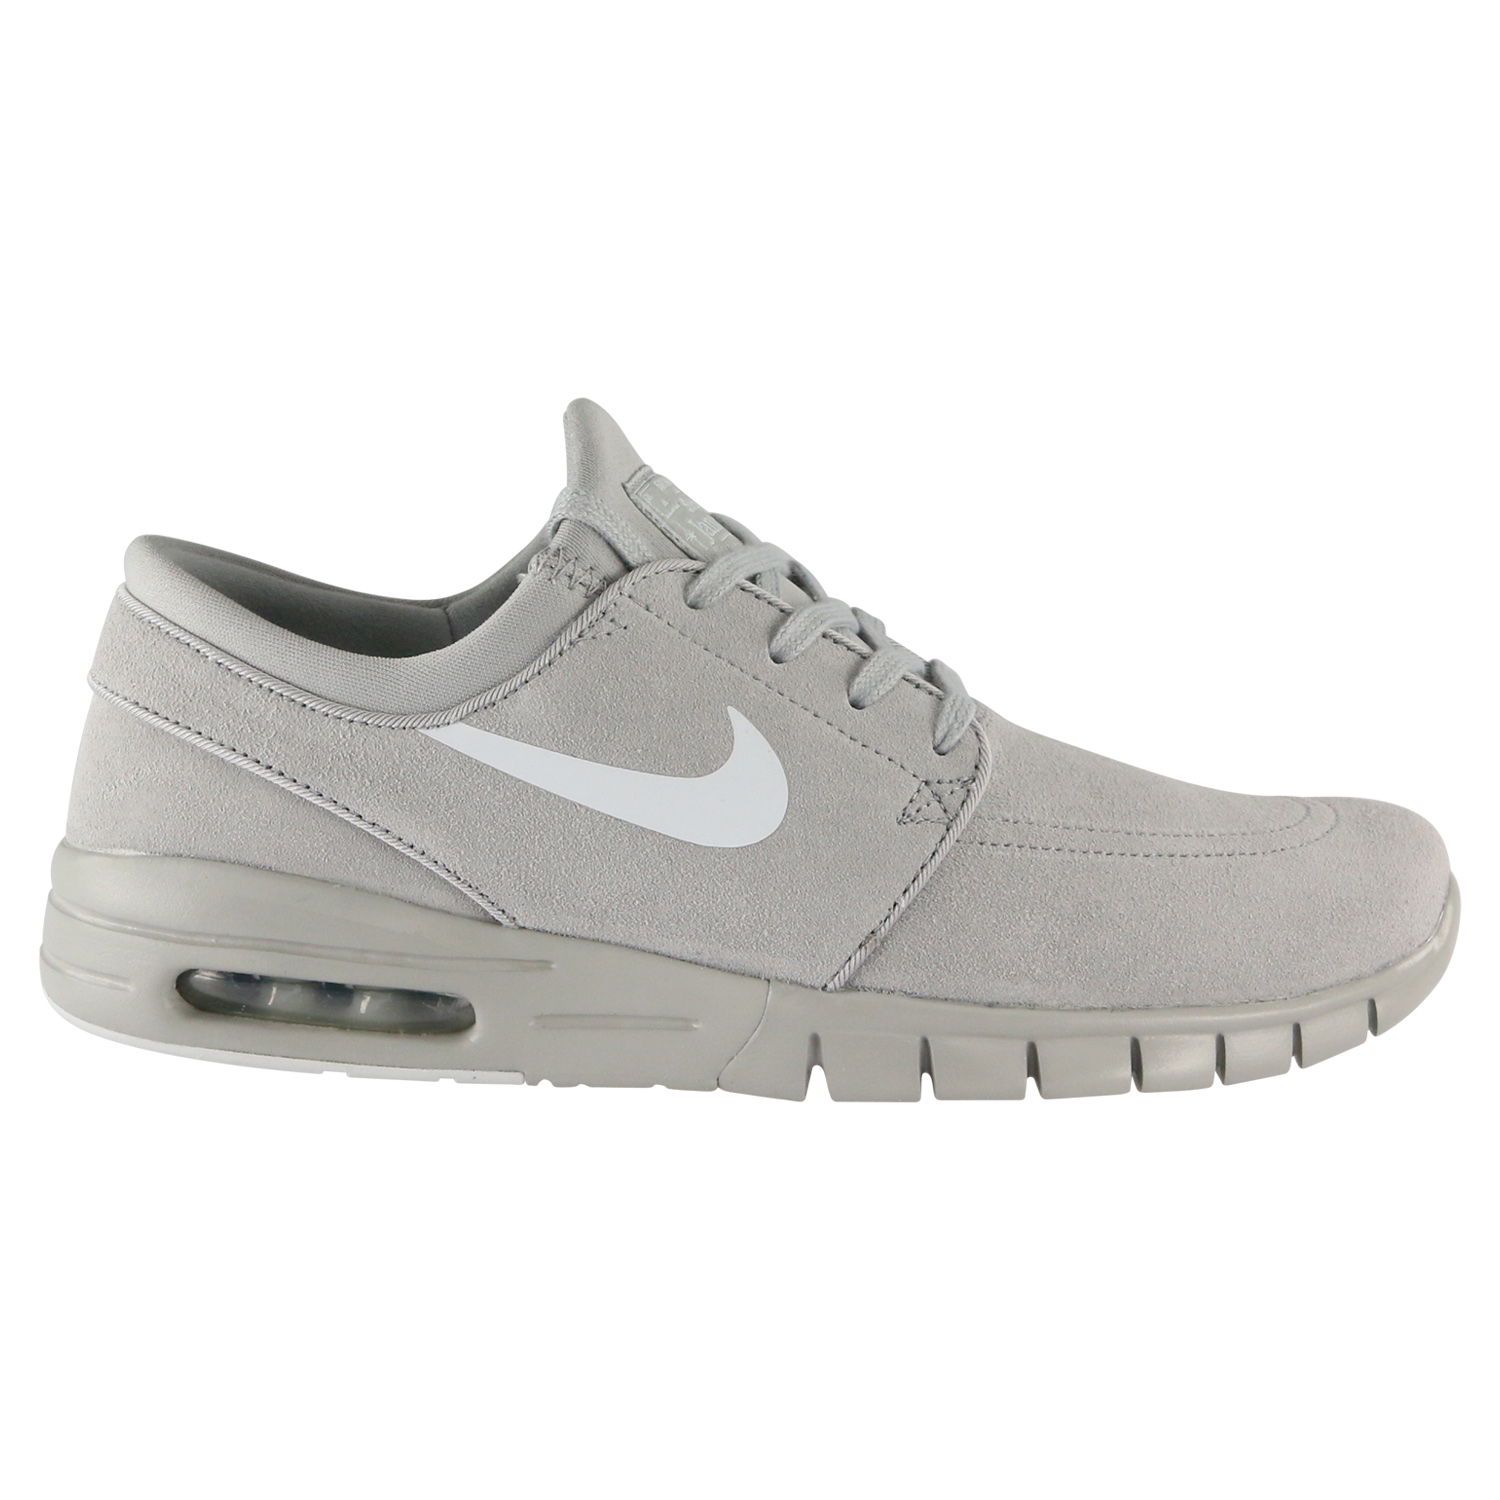 nike sb stefan janoski max schuhe turnschuhe sneaker damen. Black Bedroom Furniture Sets. Home Design Ideas